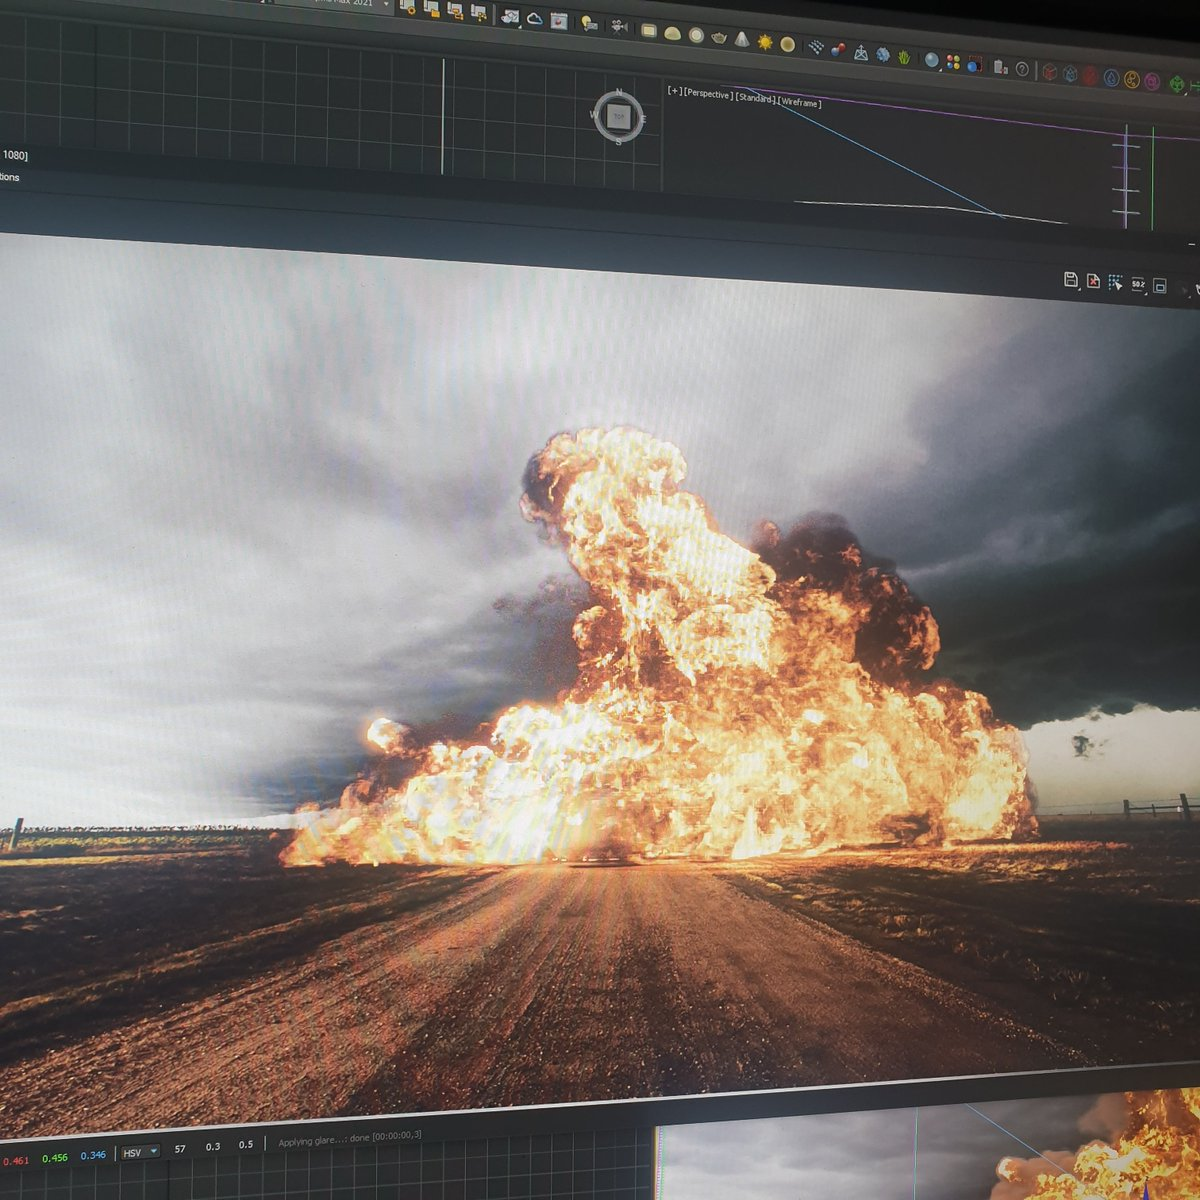 Working on the next tutorial! #tyflow #3dsmax #vray #phoenixfd #3d #3drender #chaosgroup #particles #animationpic.twitter.com/IMQkySvG12